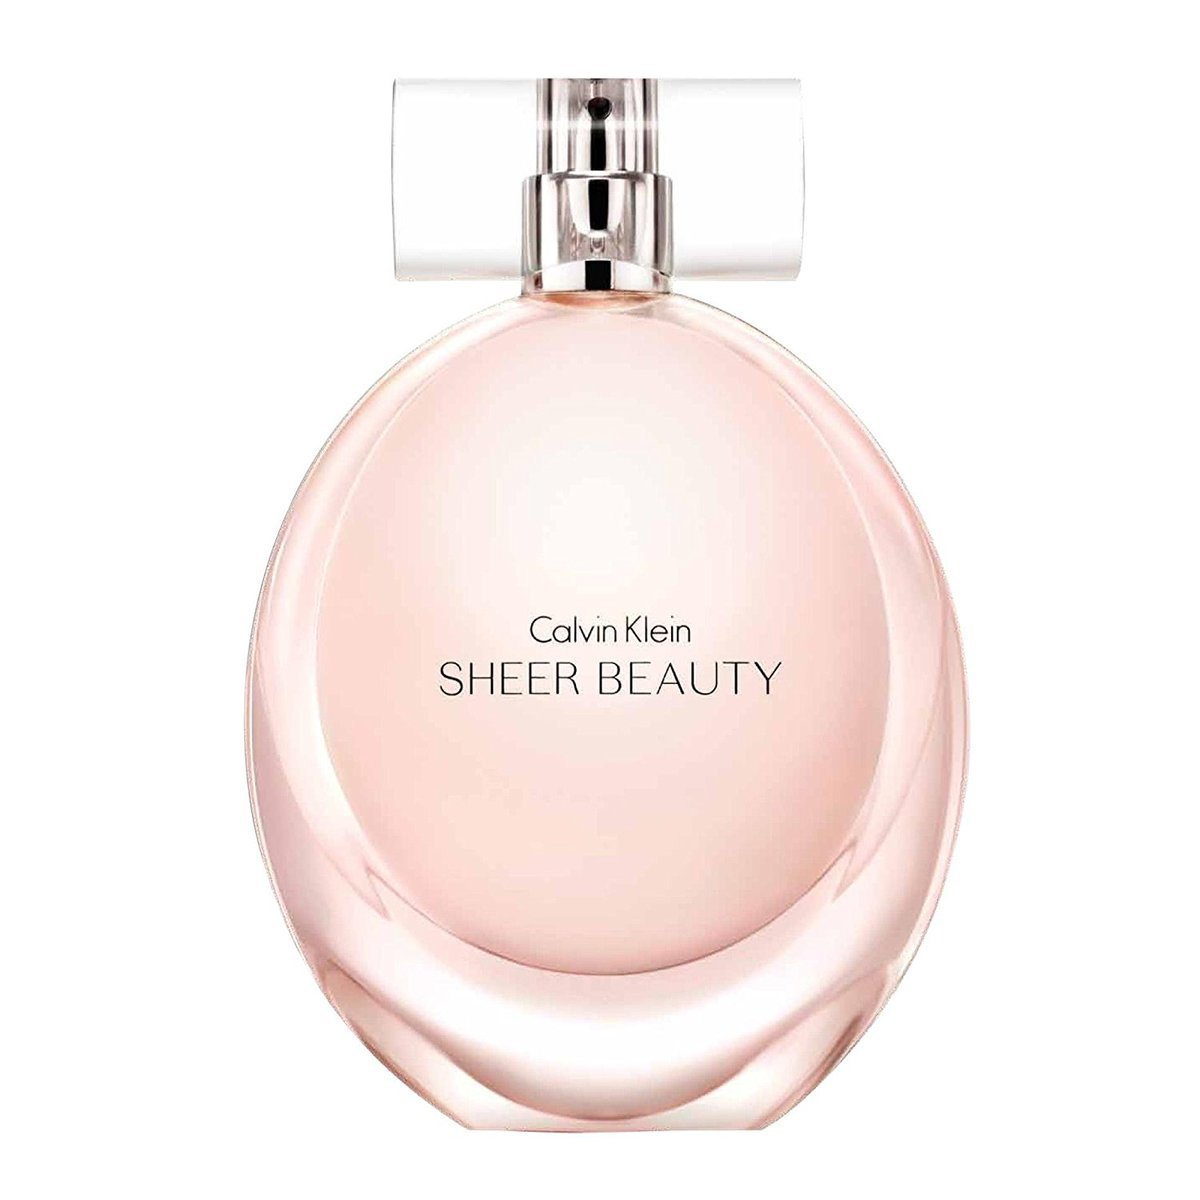 compare calvin klein ck beauty 100ml edp women 39 s perfume. Black Bedroom Furniture Sets. Home Design Ideas